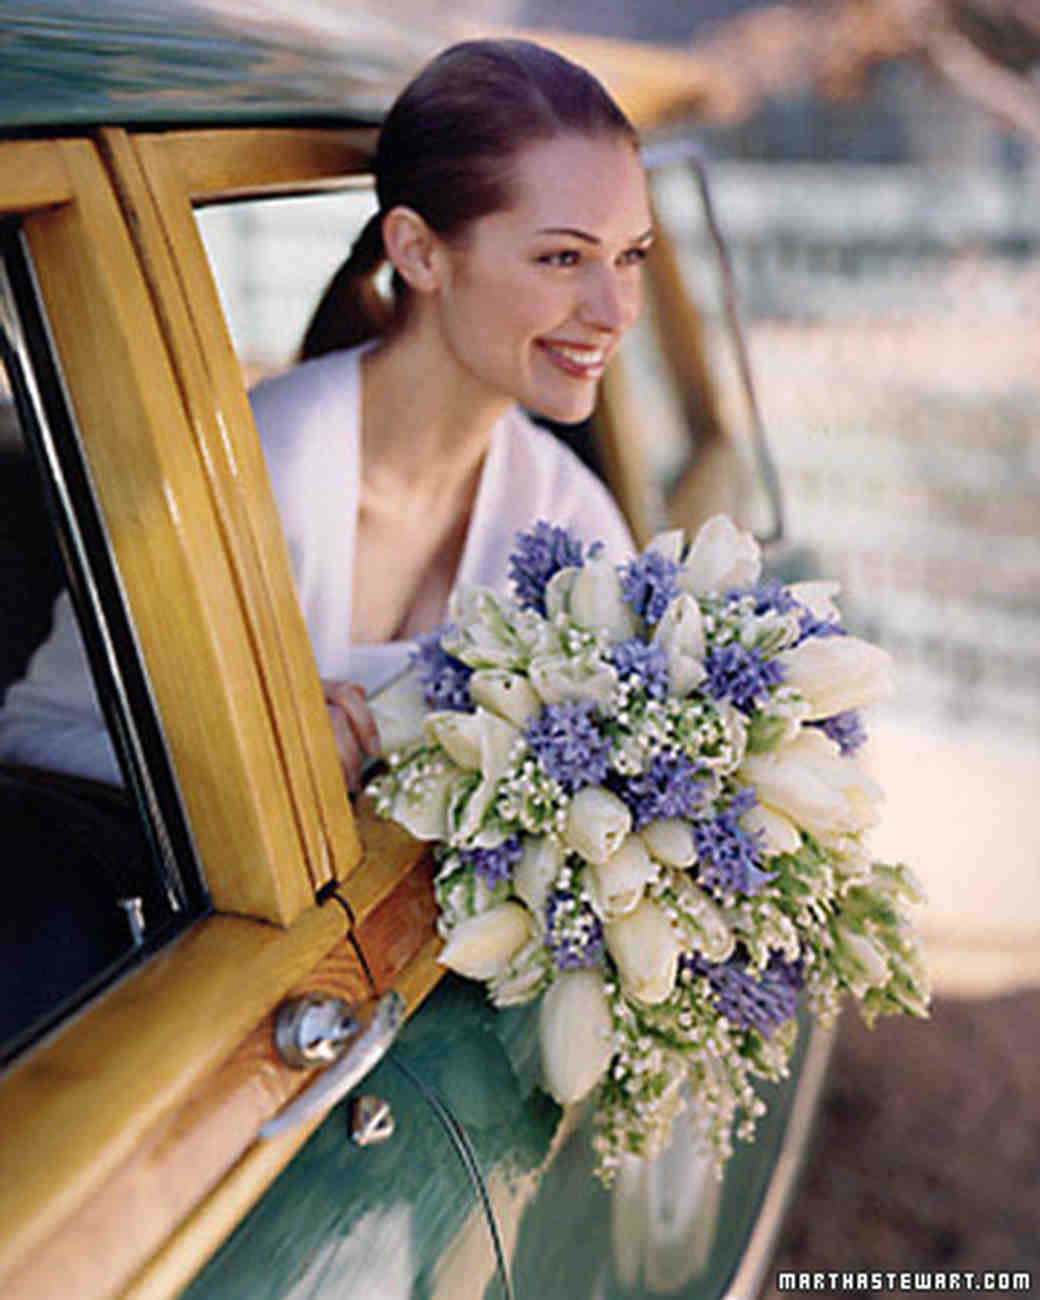 wed_sp2000_bouquets_05.jpg